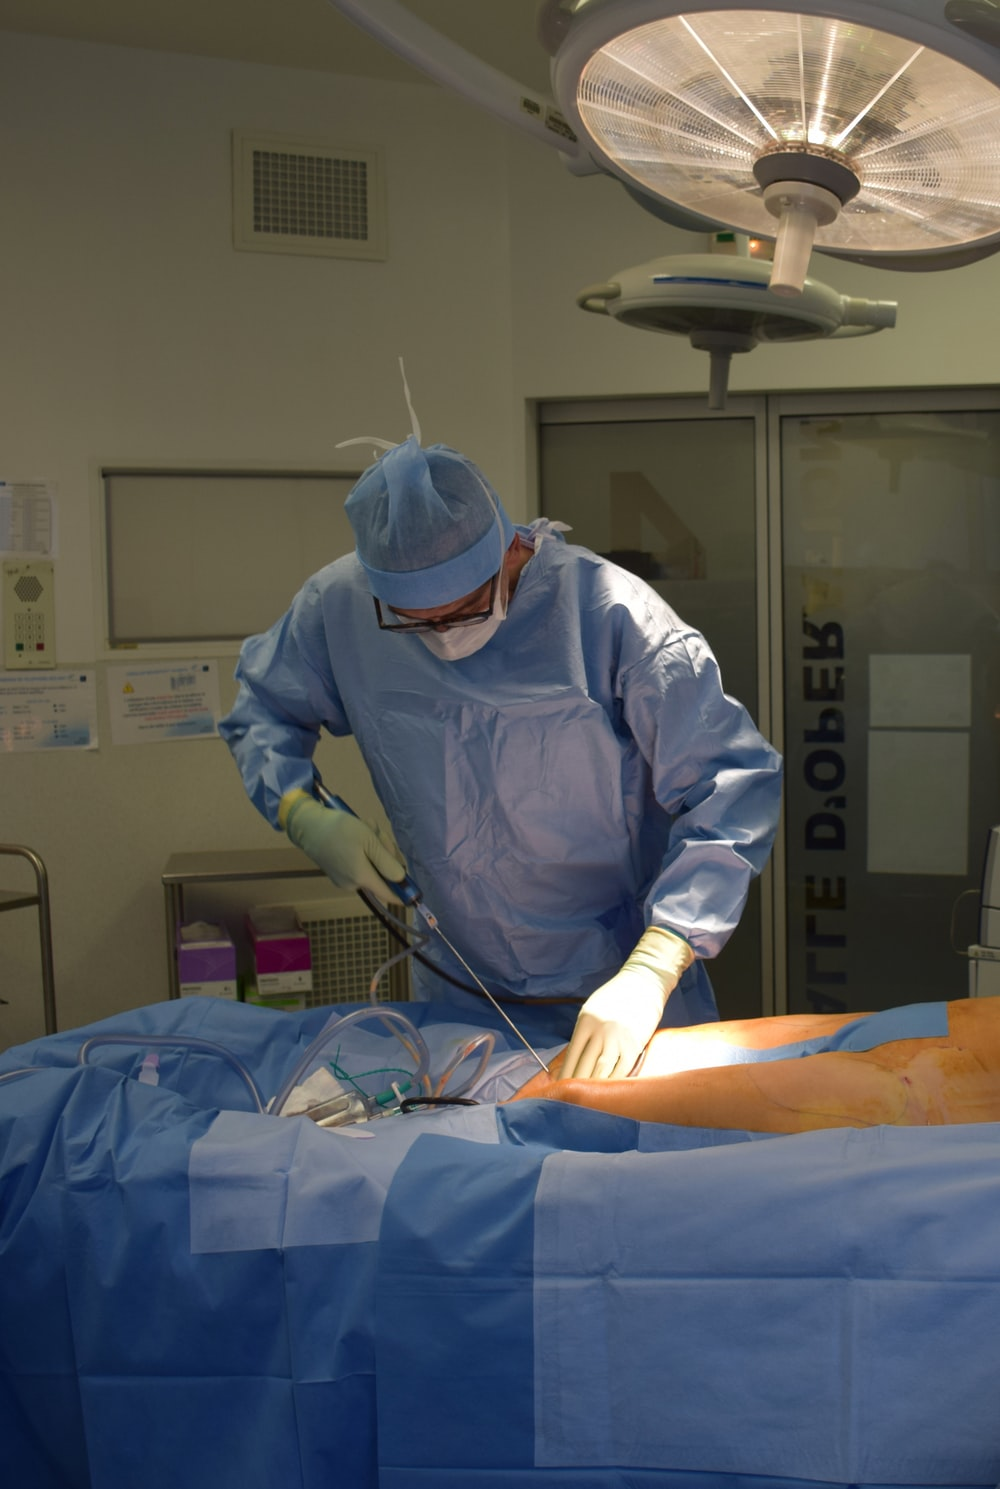 person in white medical scrub suit